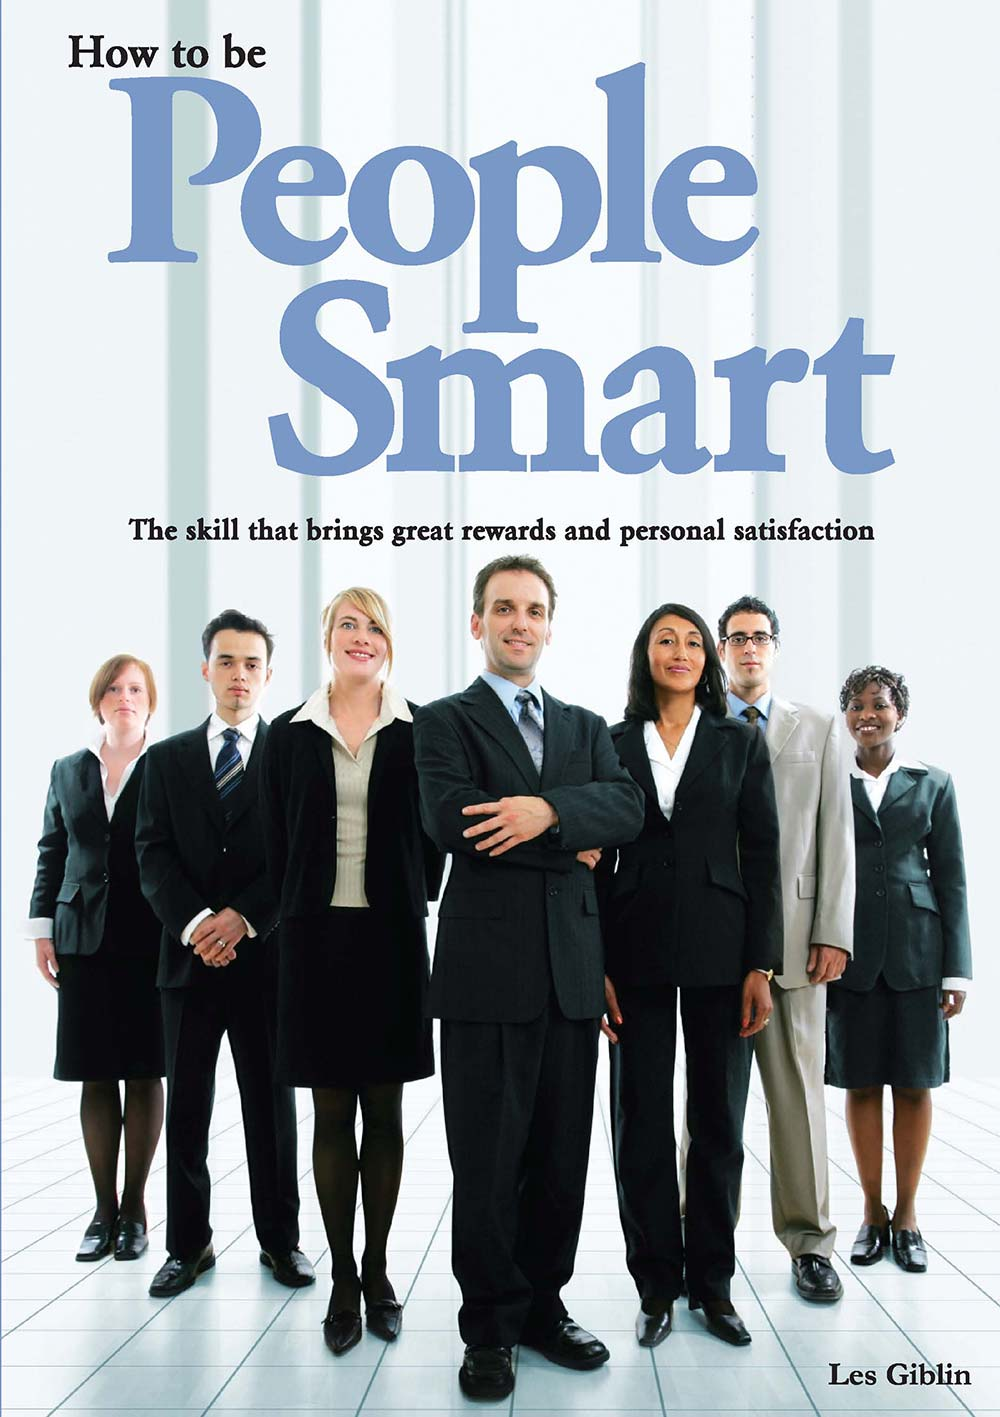 How To Be People Smart